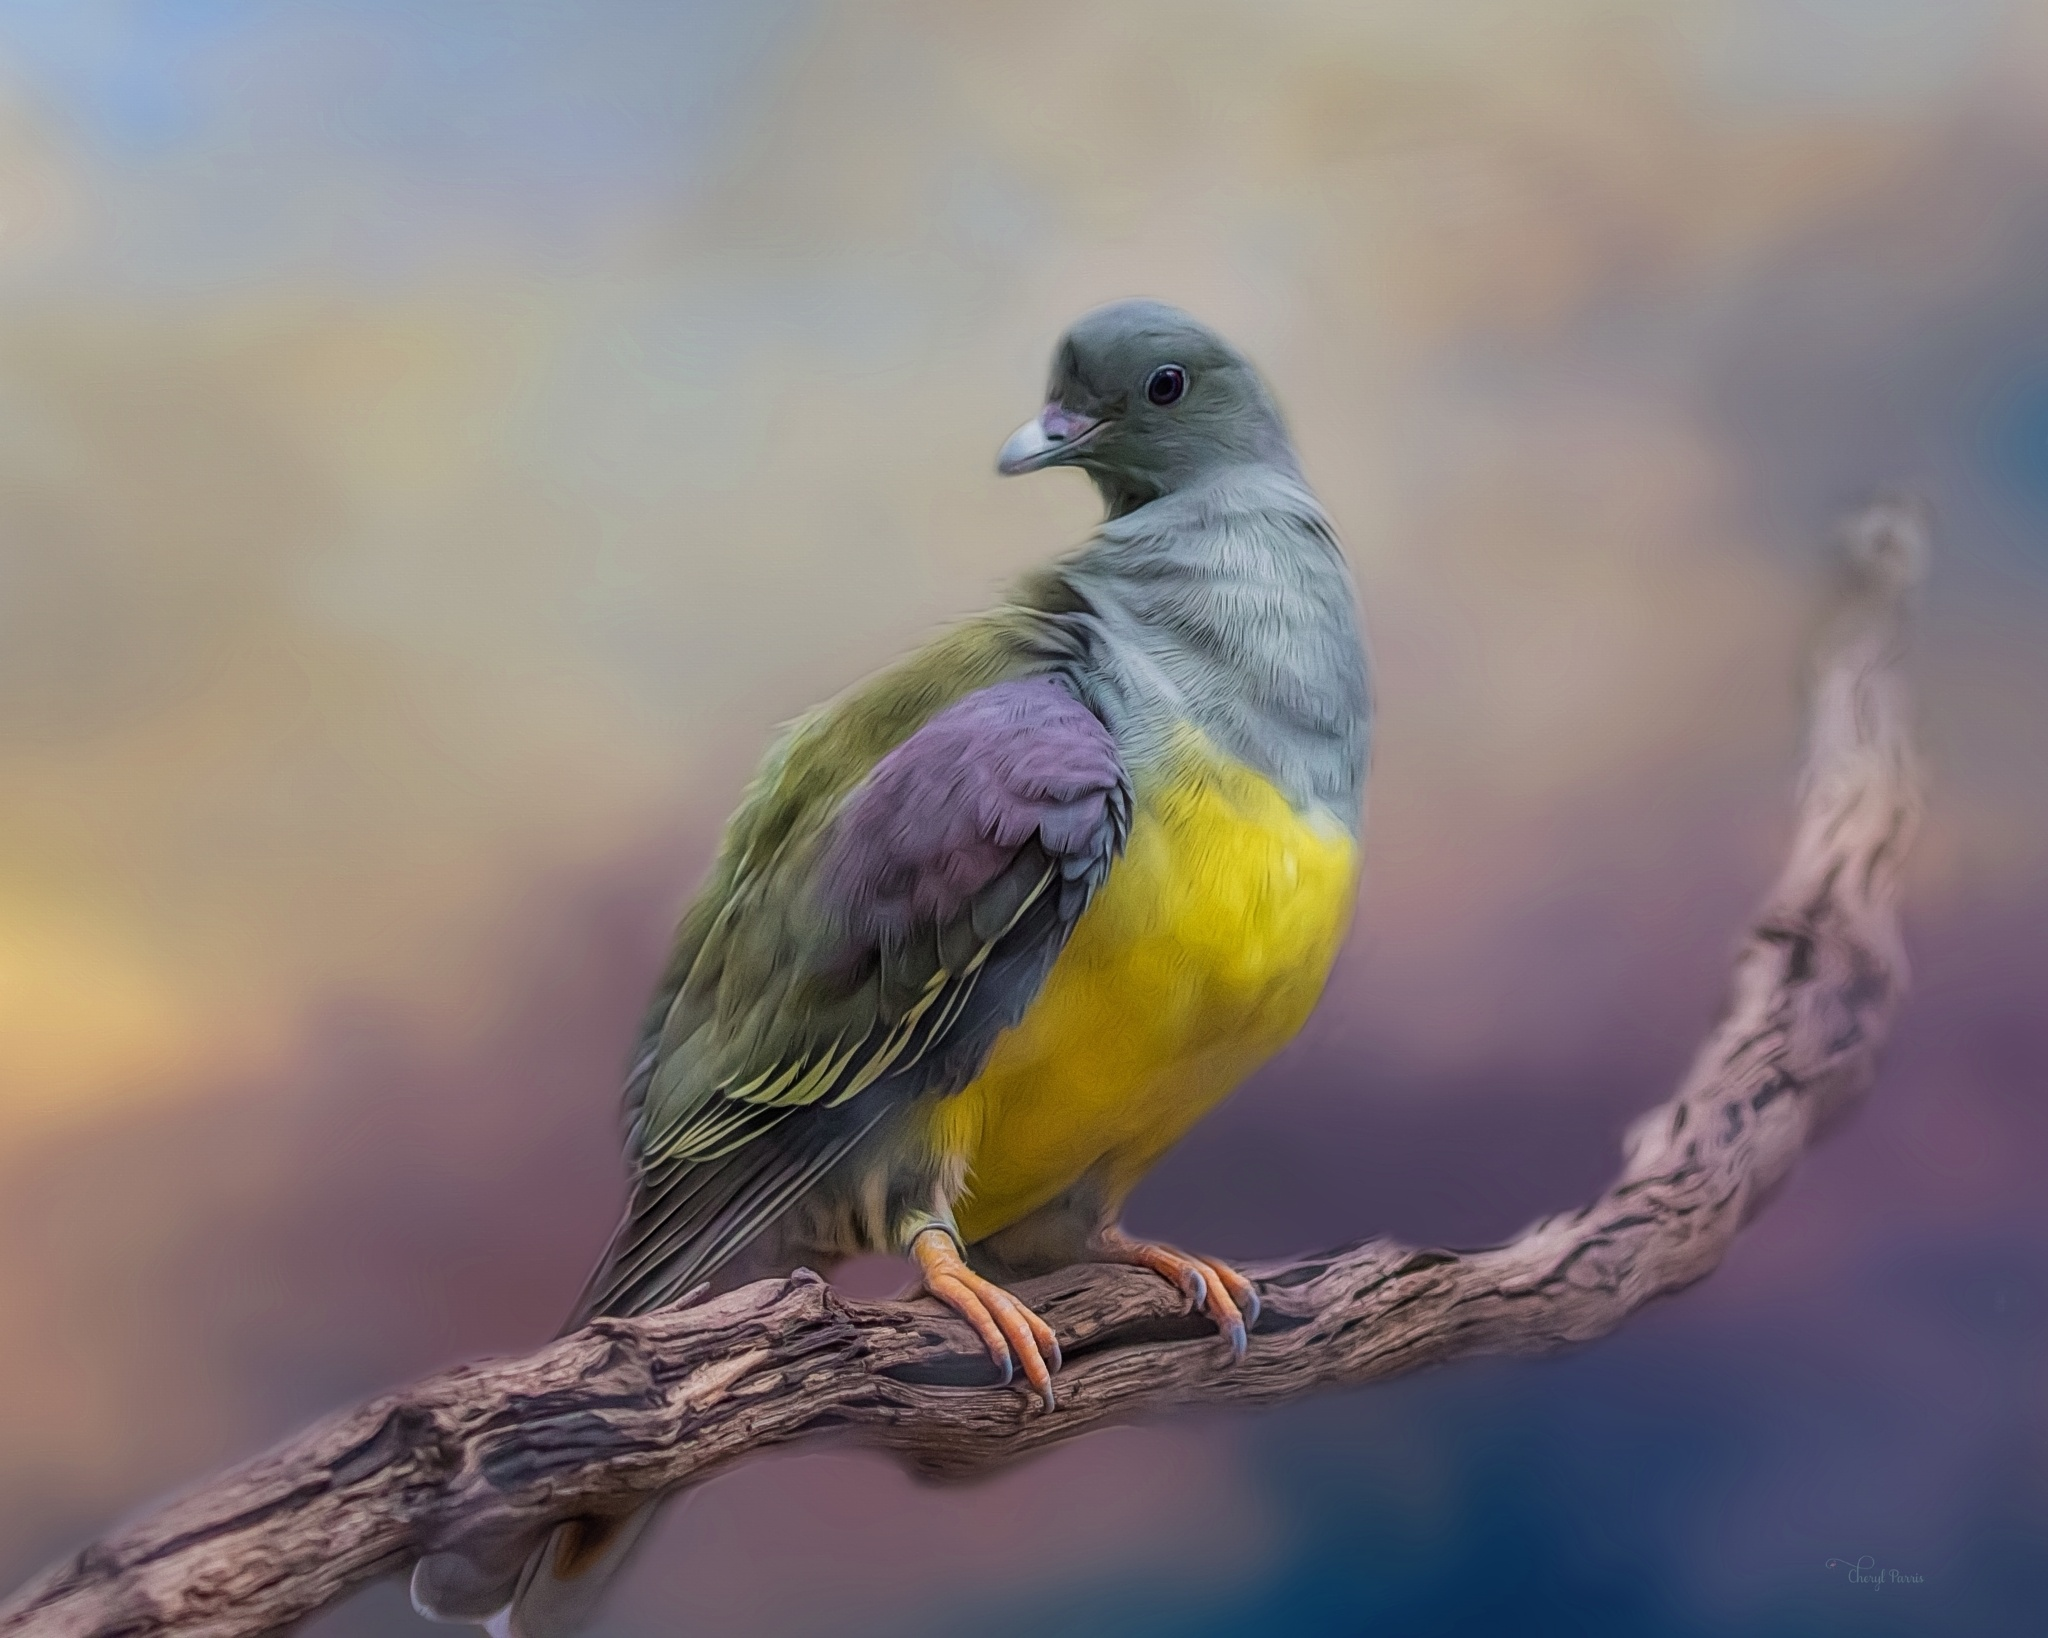 Bruce's Green Pigeon by Cherbeni